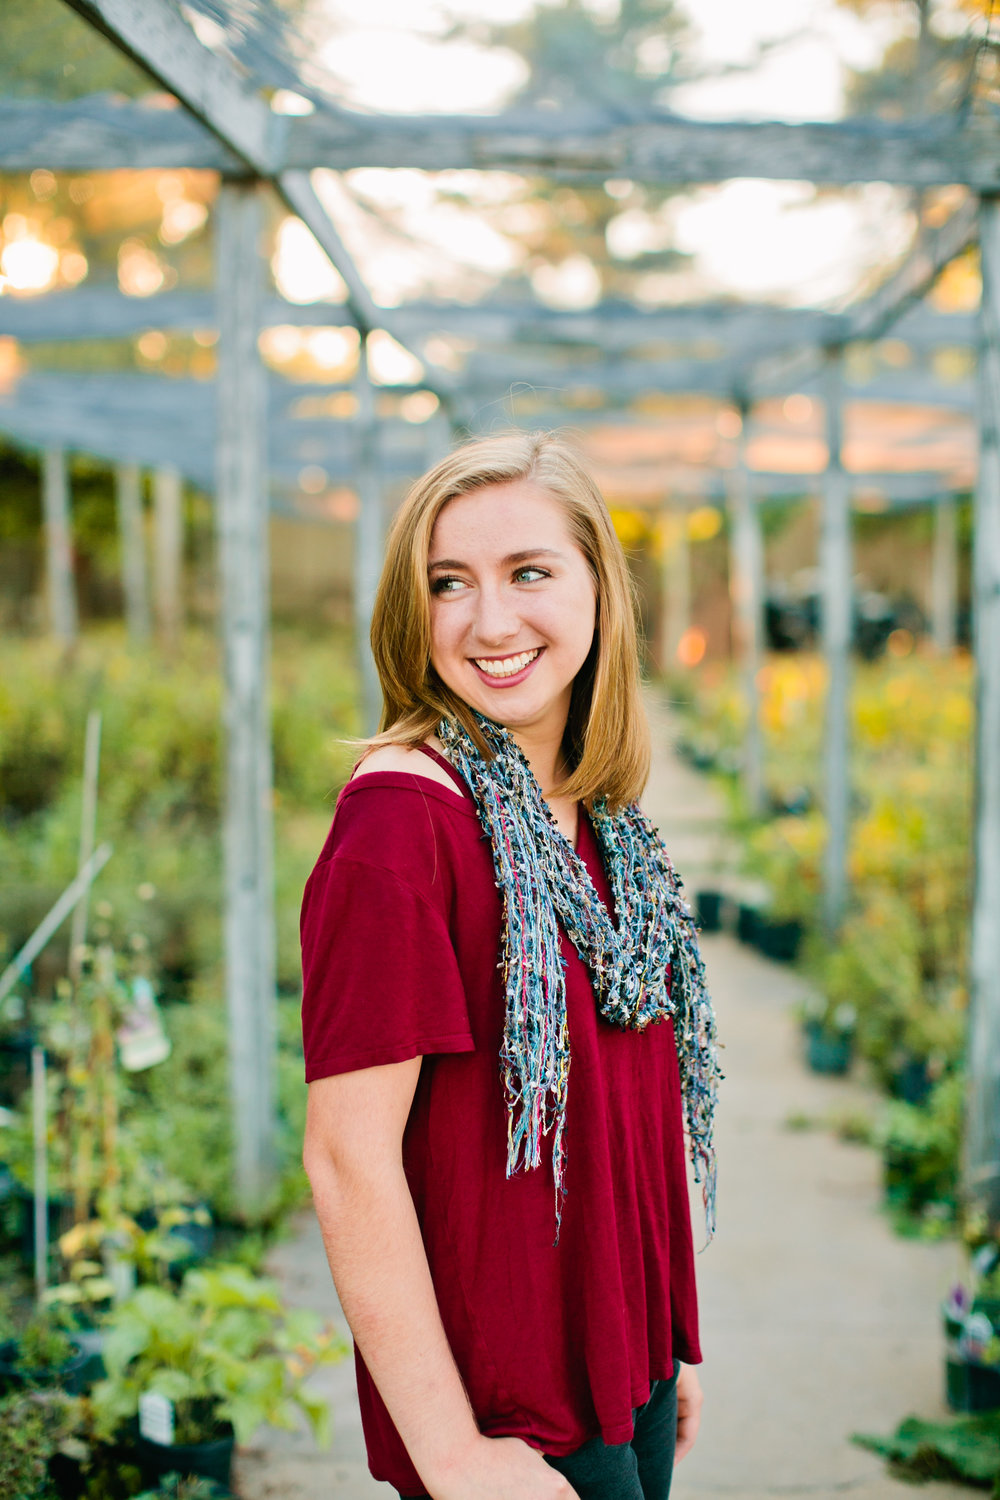 Nevada Story City senior photos